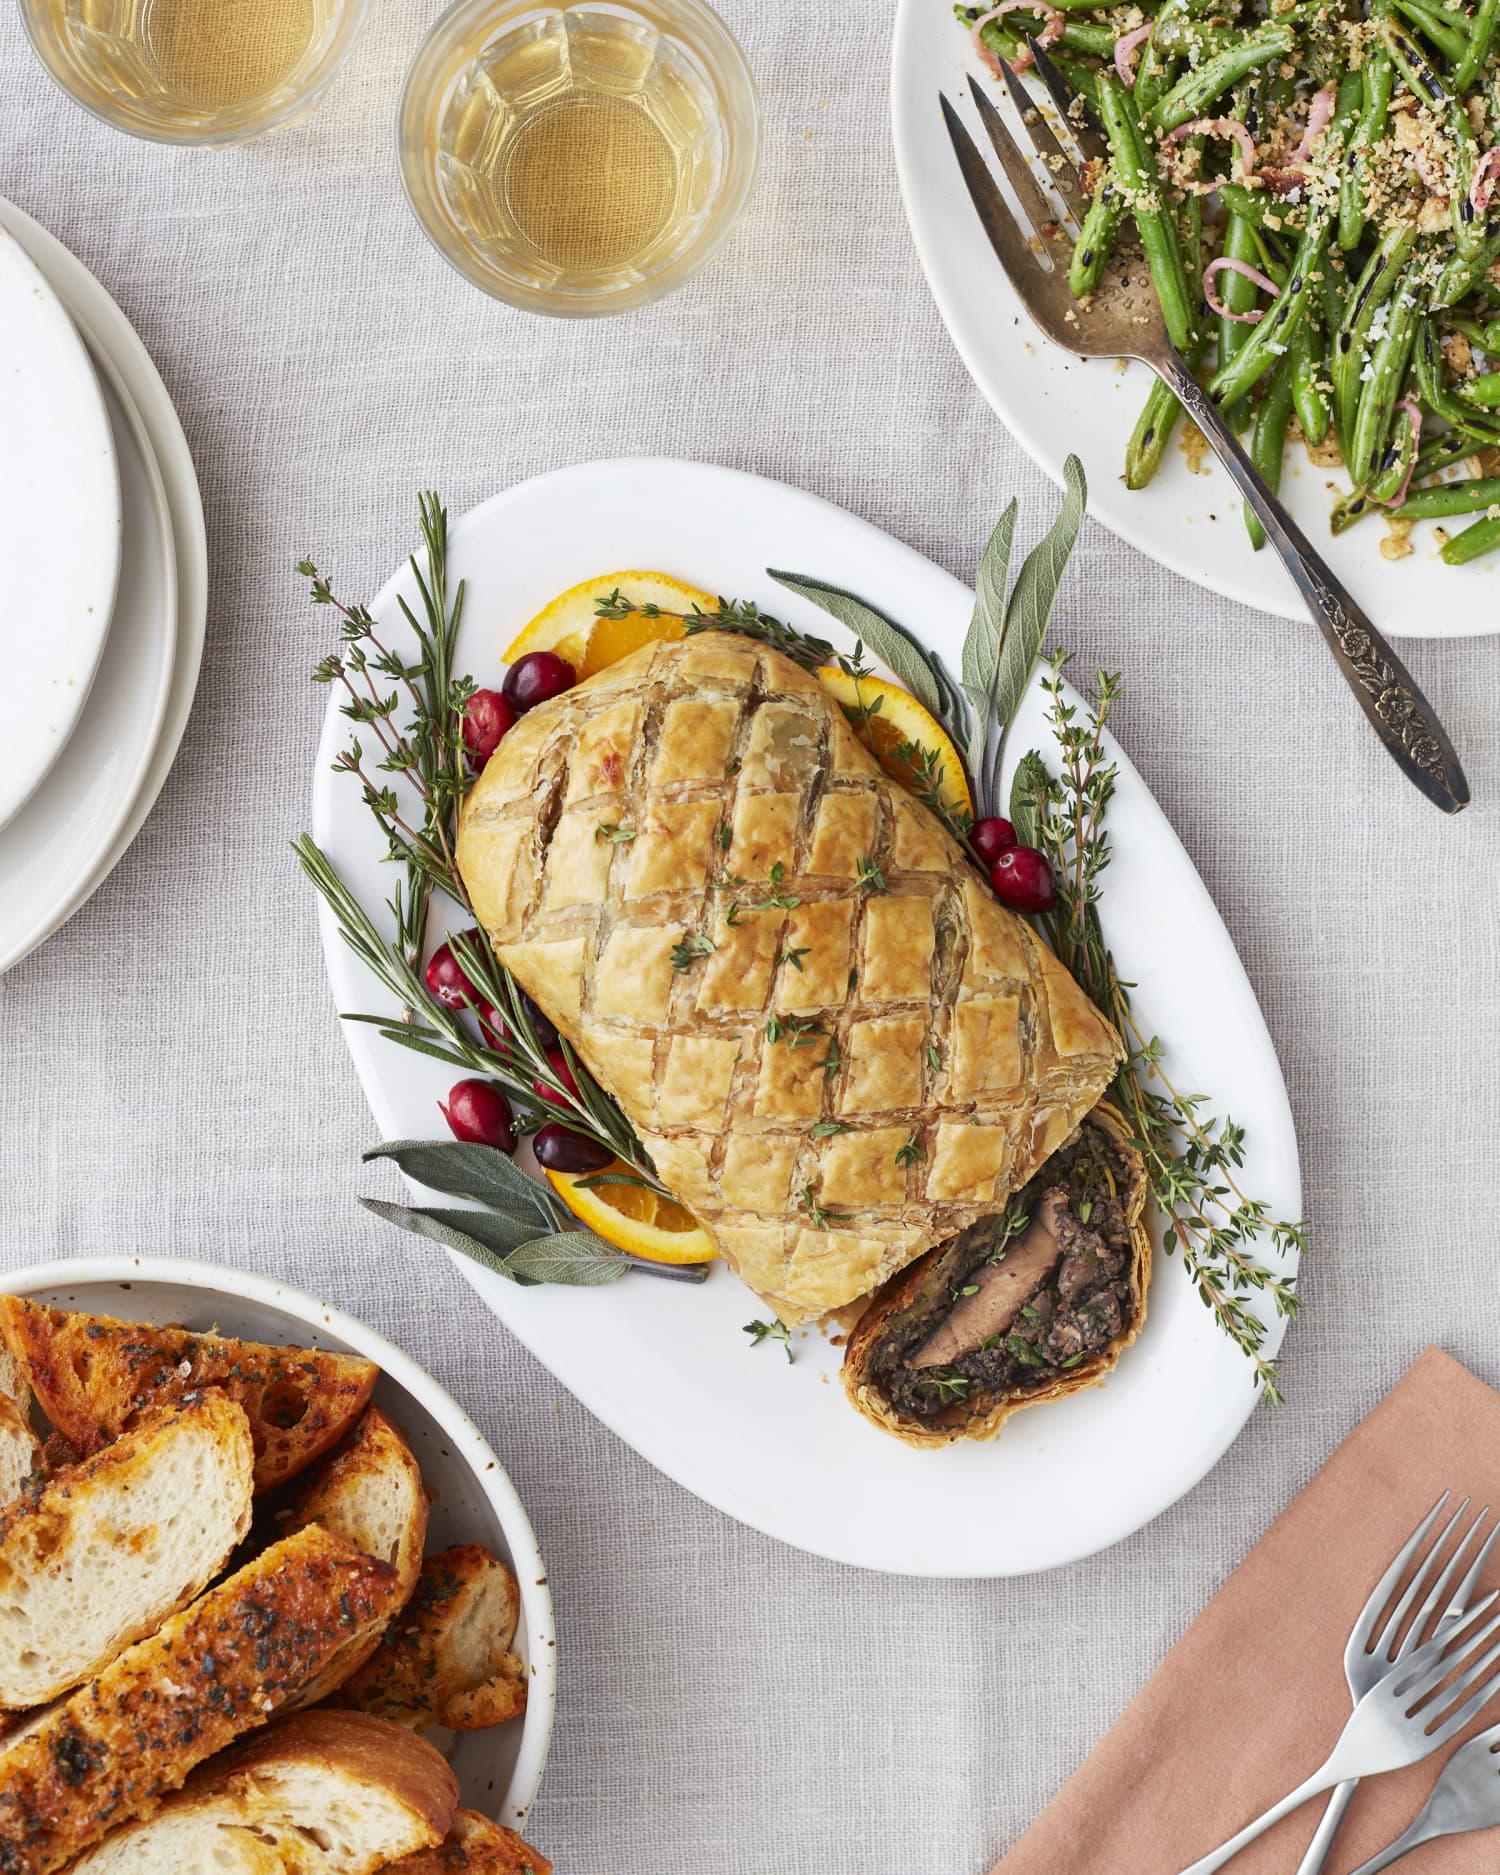 Vegetarian Mushroom Wellington Is the Ultimate Main Dish for Mushroom-Lovers